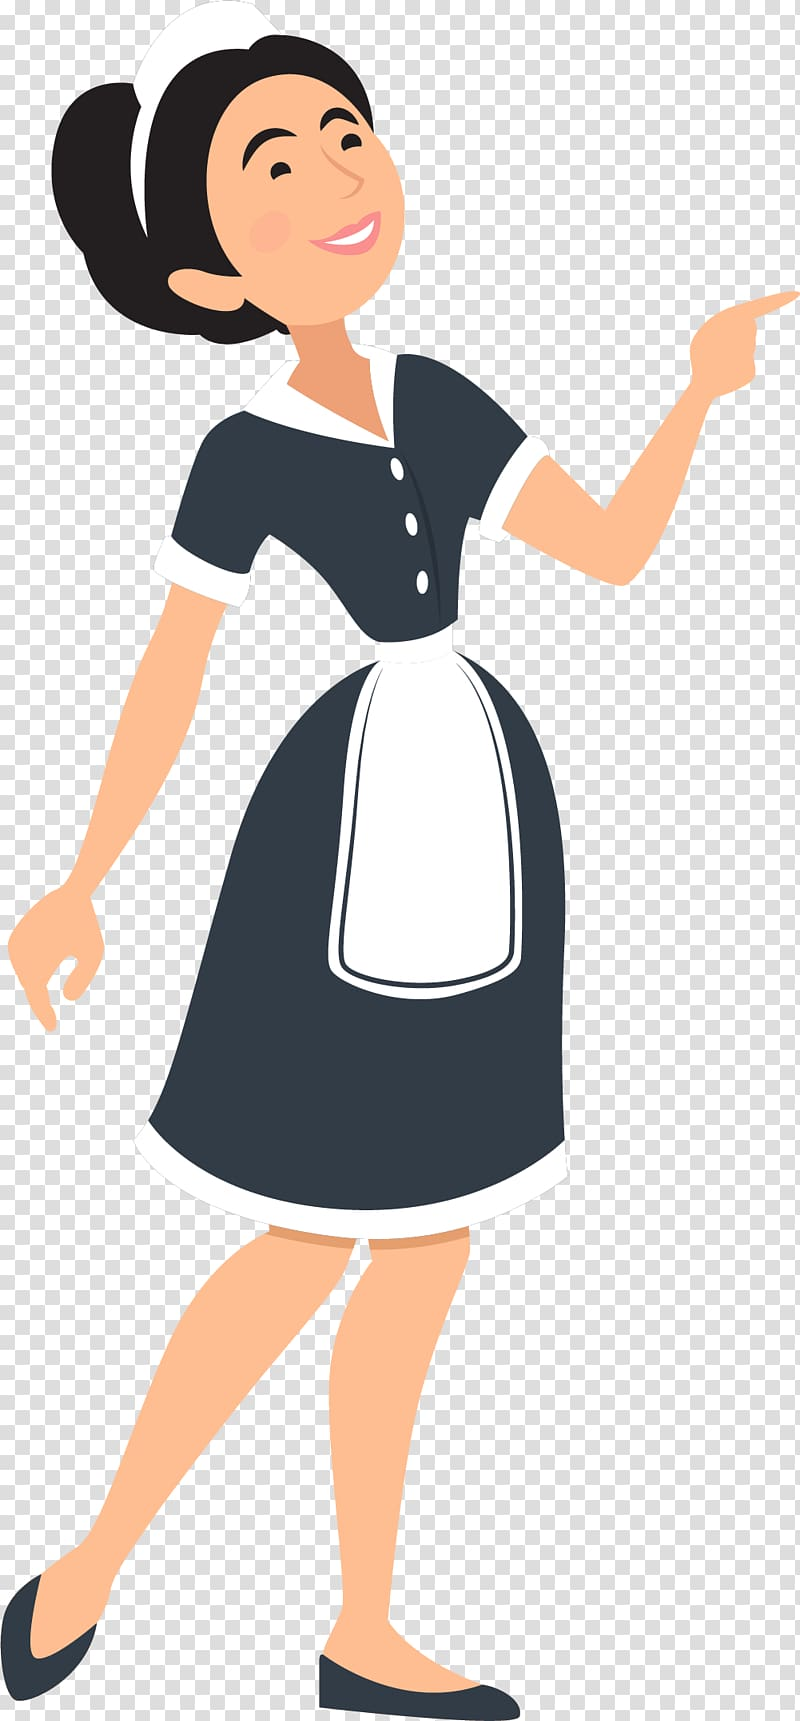 Maid clipart female servant. Housekeeper illustration cleaning the